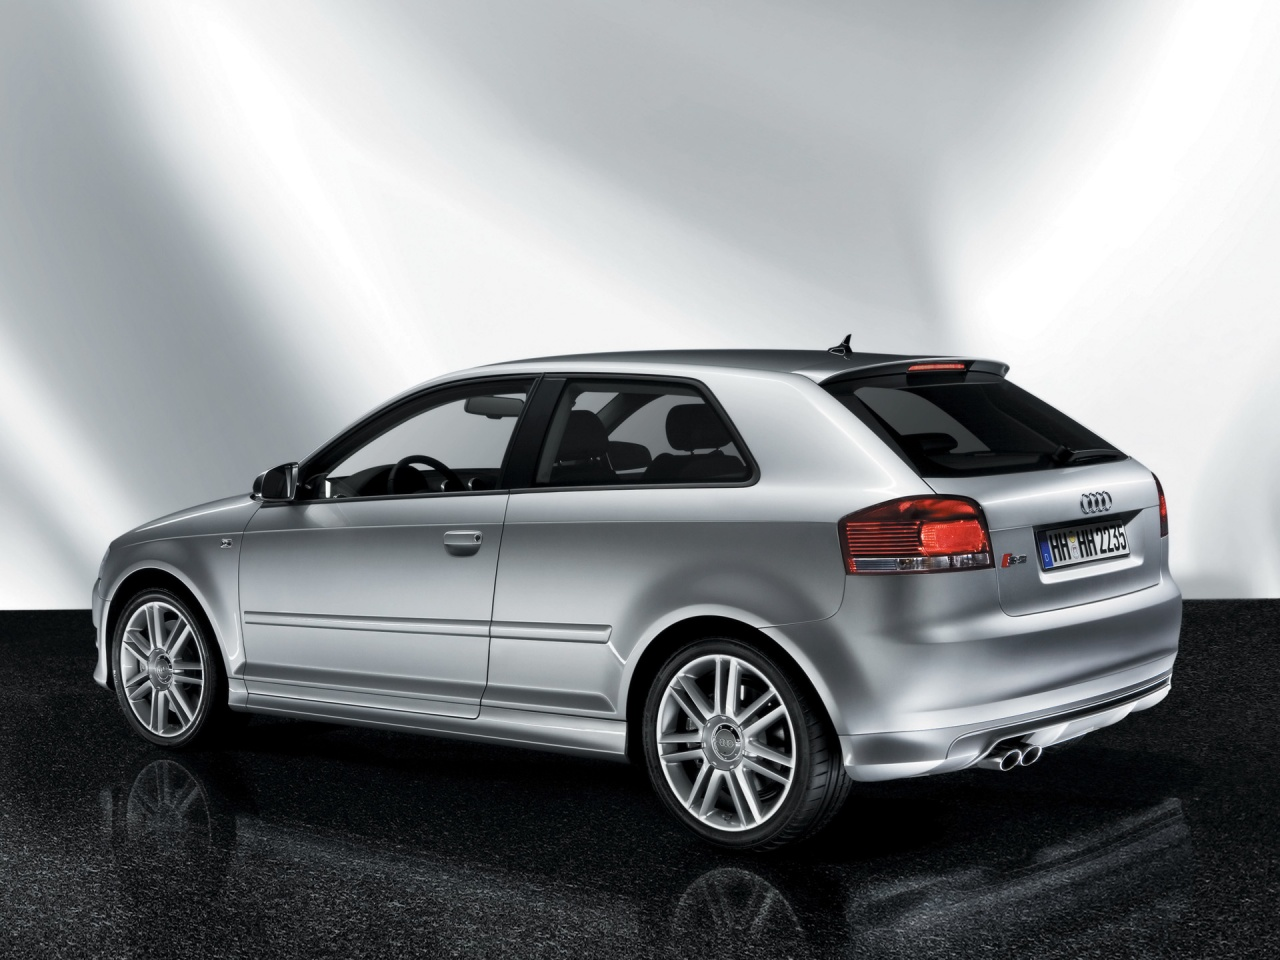 1280x960 Audi S3 Rear Desktop Pc And Mac Wallpaper